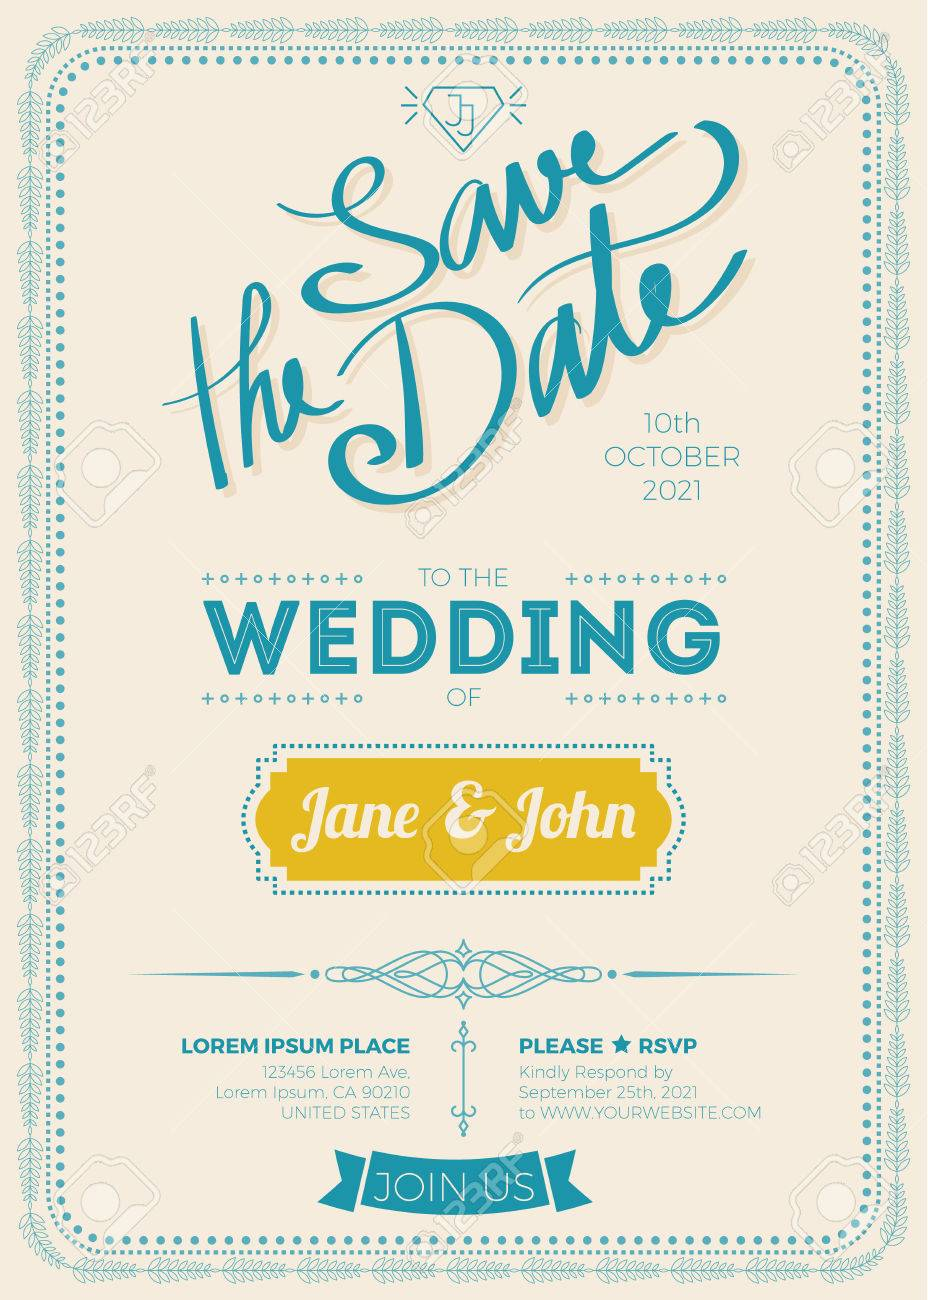 Vintage Wedding Invitation Card A5 Size Frame Layout Template ...